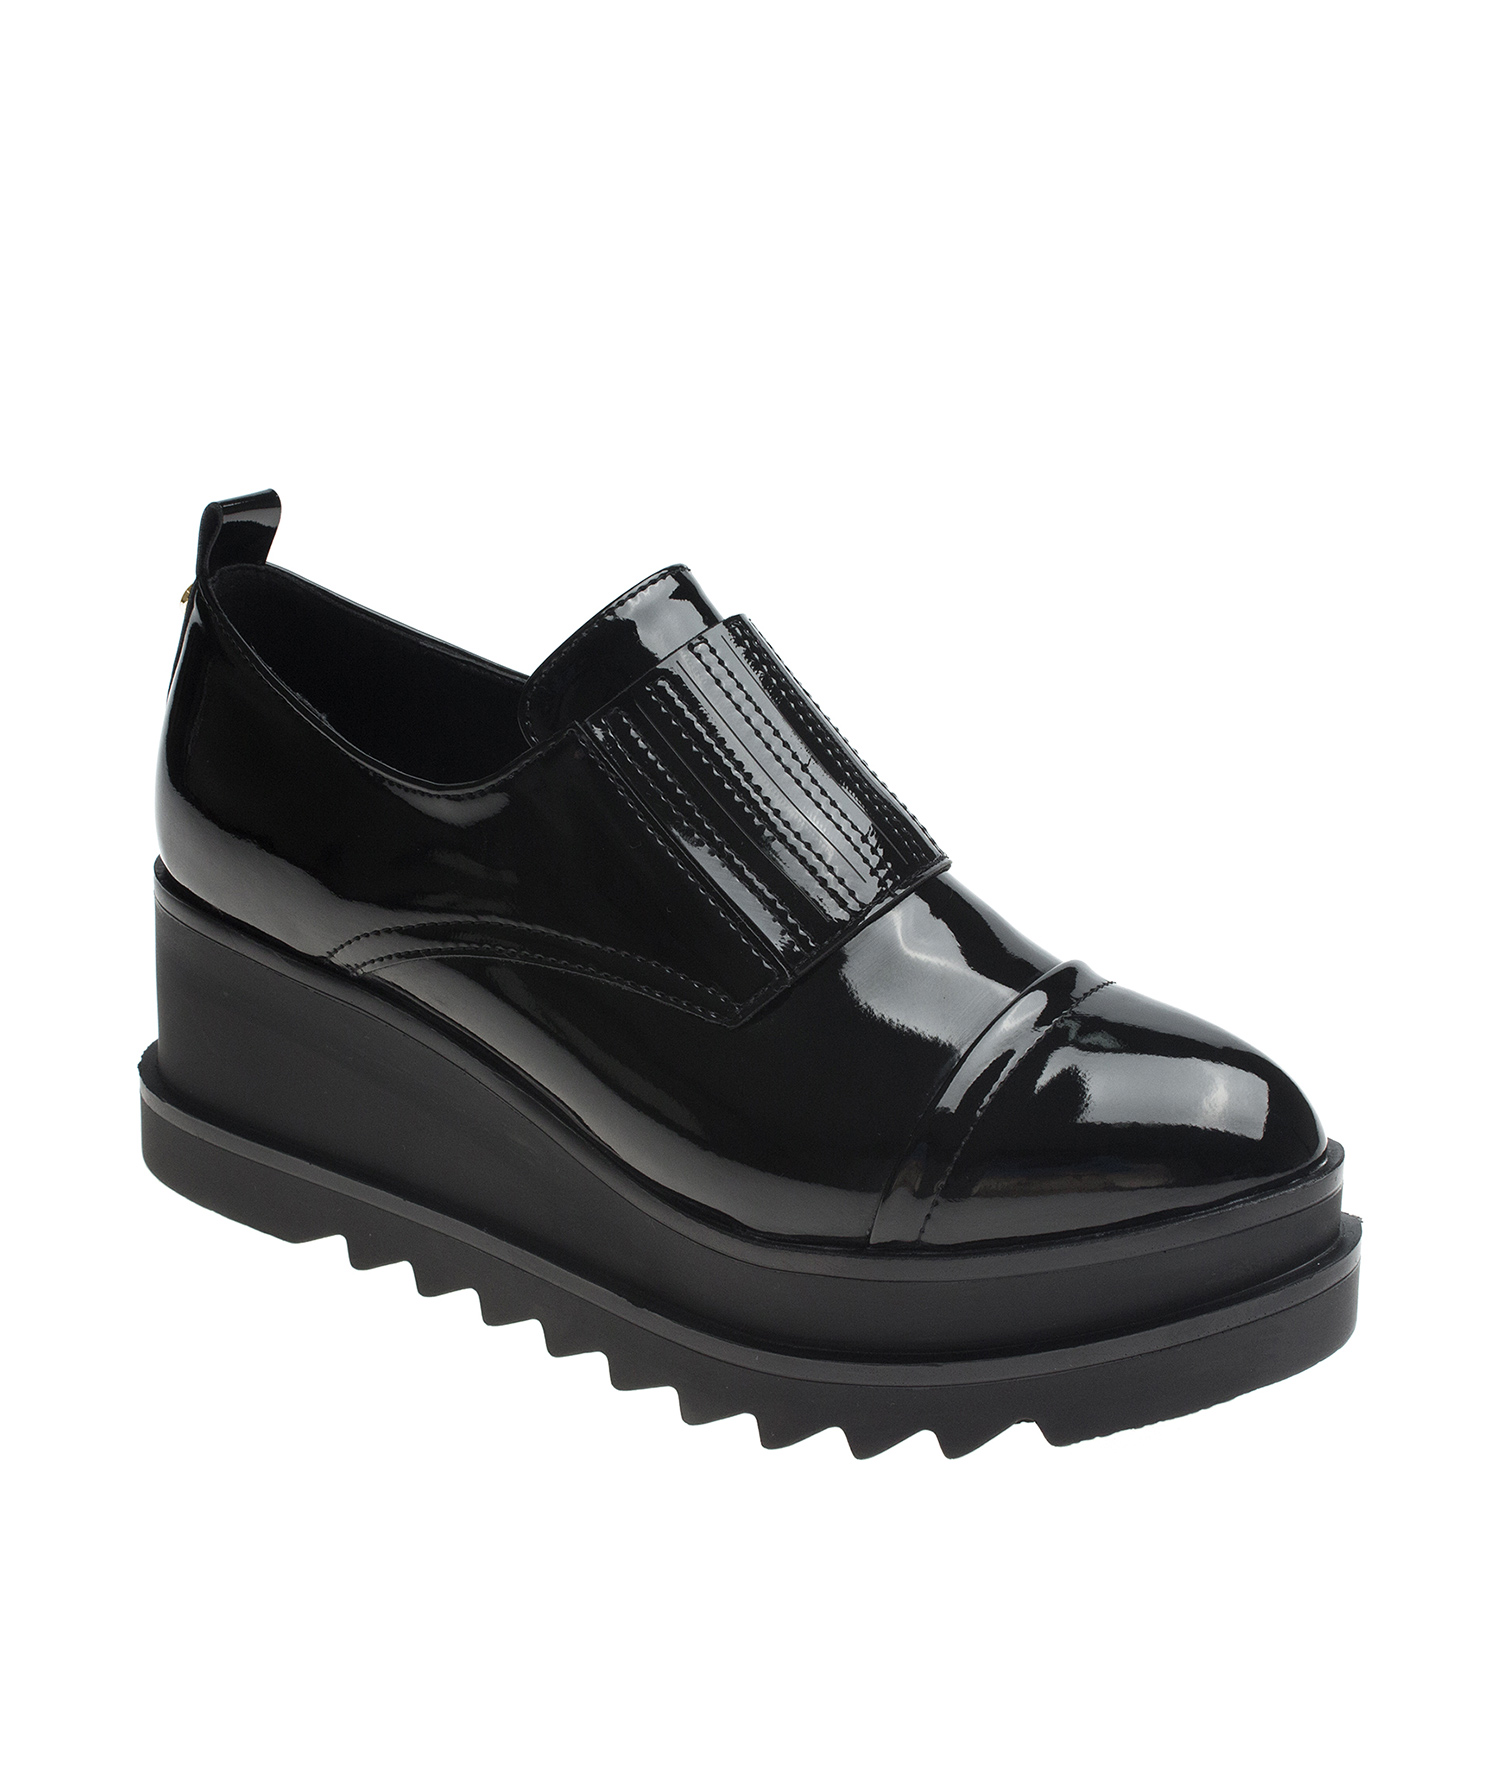 Womens Puma x Fenty By Rihanna Patent Creepers Triple Black Model: % Authentic New in Box Release Date: Dead Stock Original Grab your pair today! See More Puma Shoes Puma Women's Creeper Wrinkled Patent.